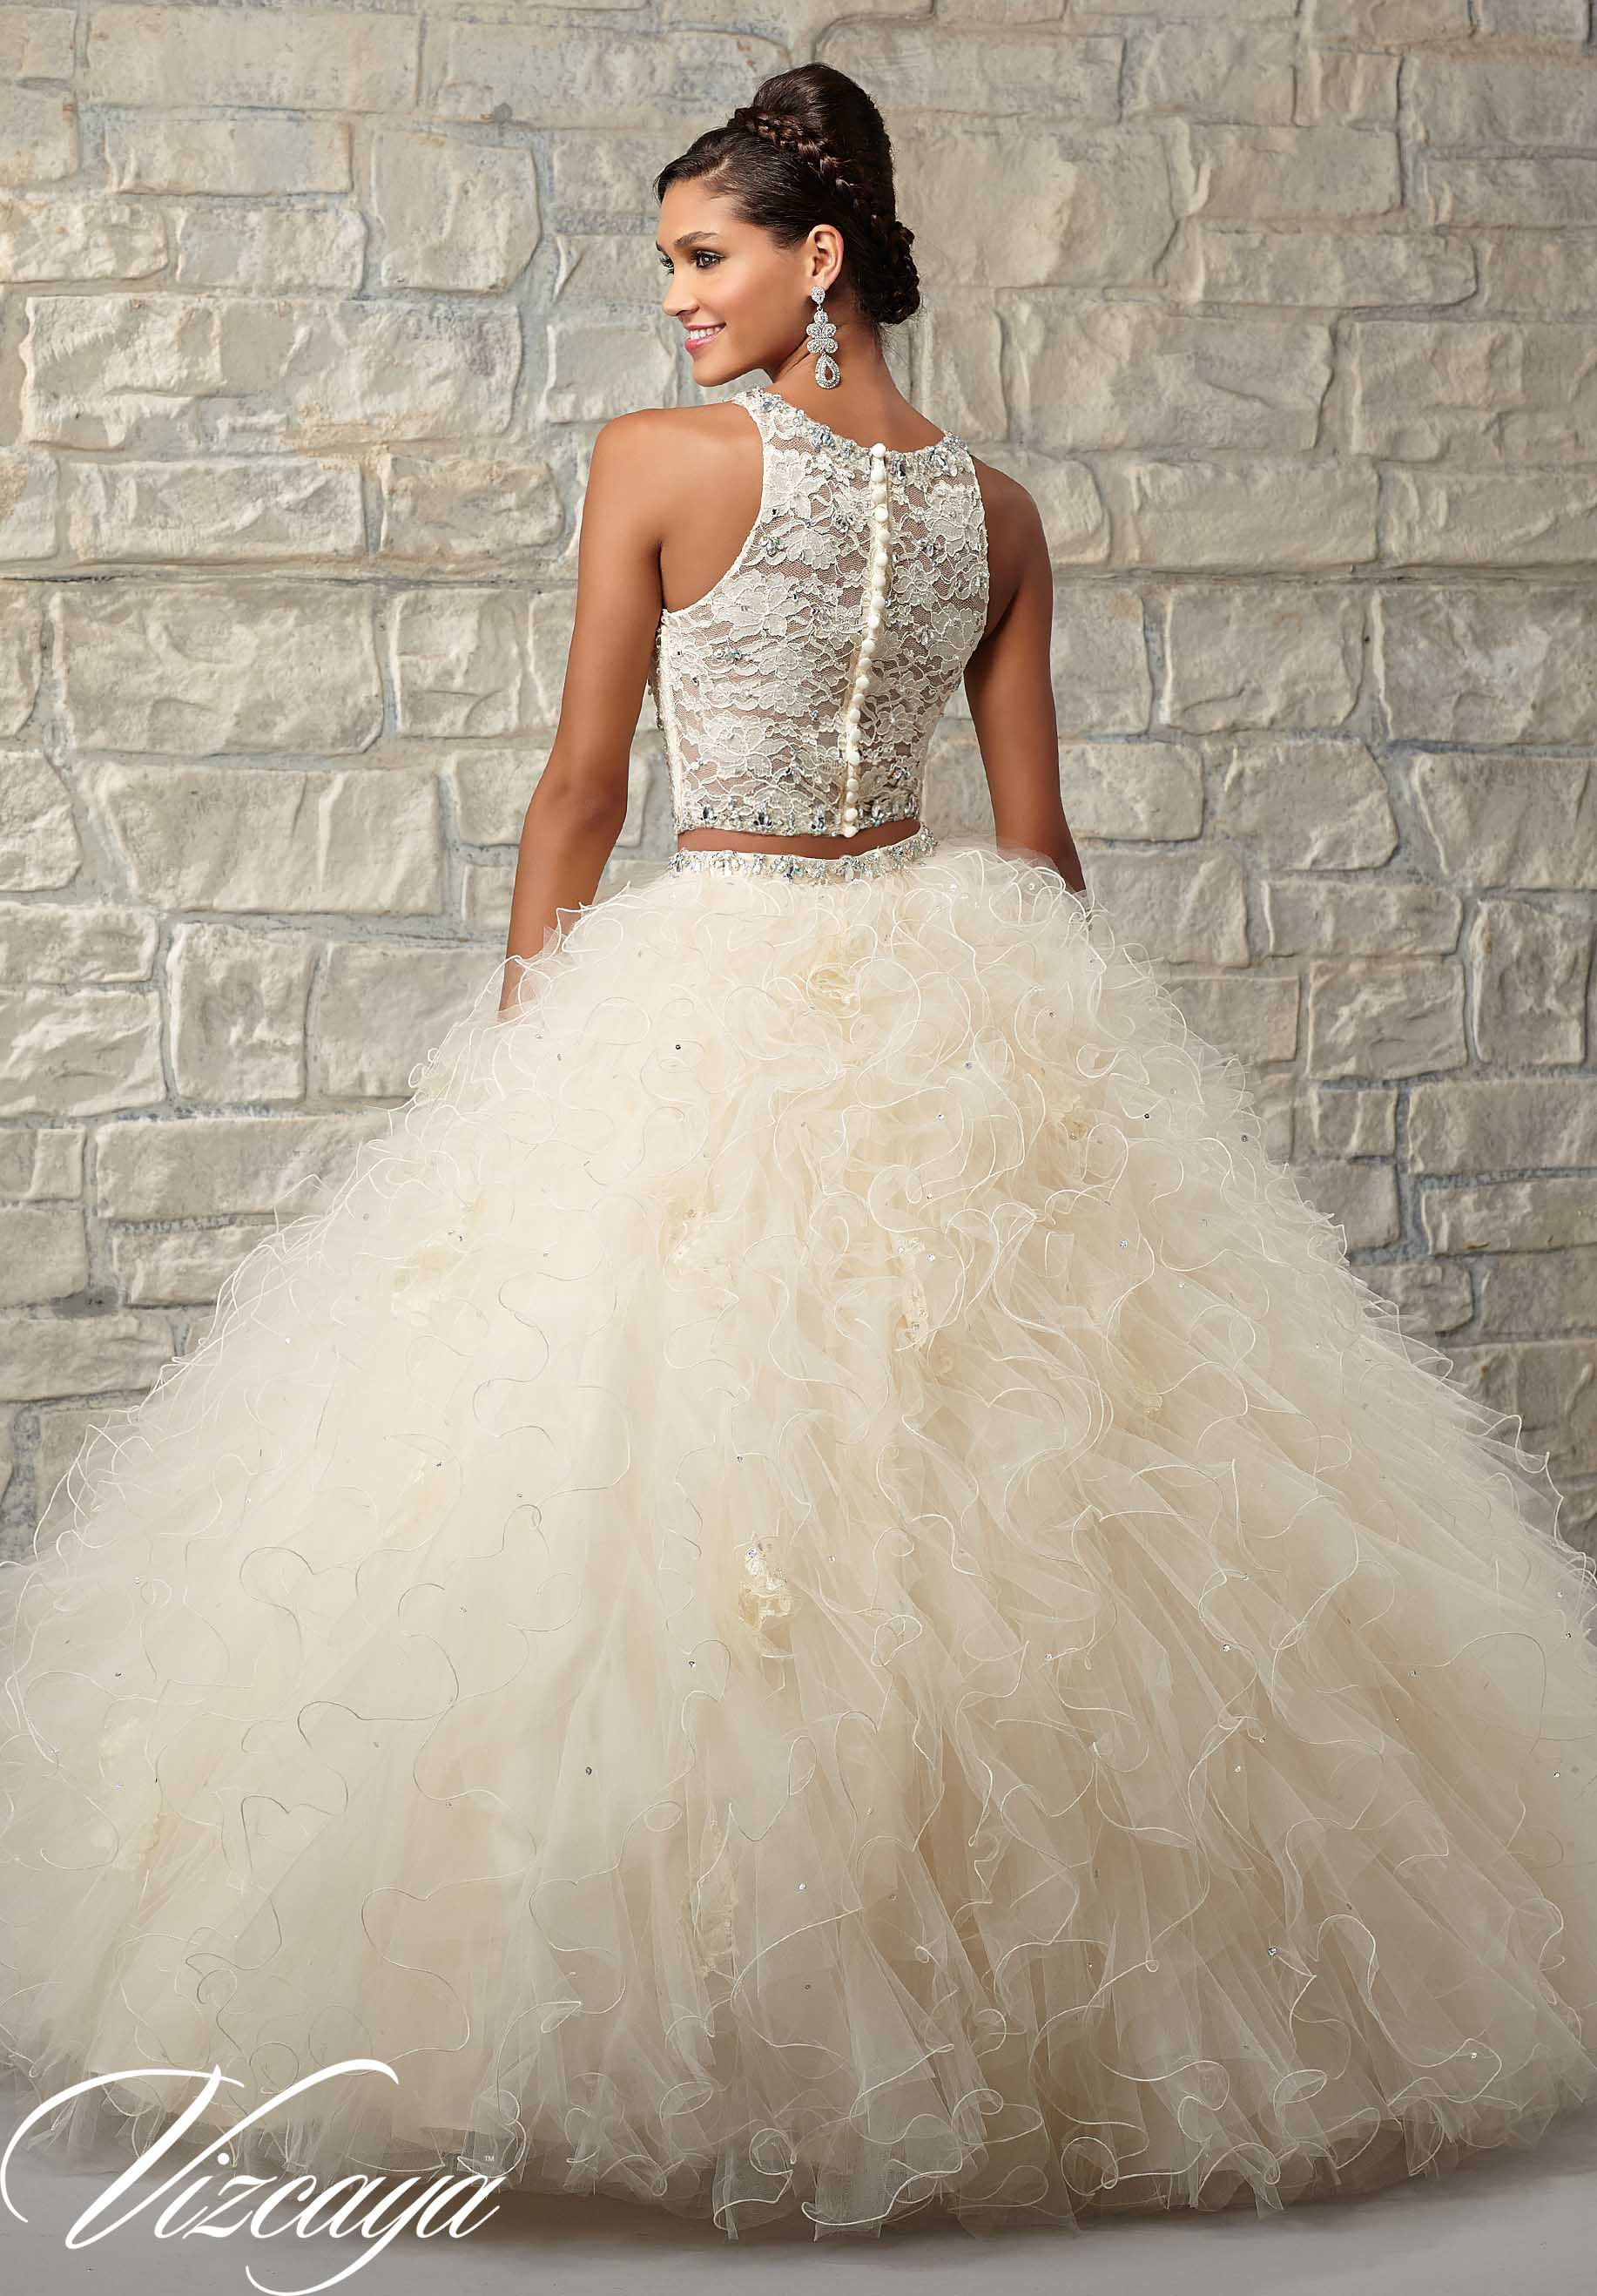 89026 Quinceanera Gowns Two-Piece Ruffled Tulle Skirt with Lace ...